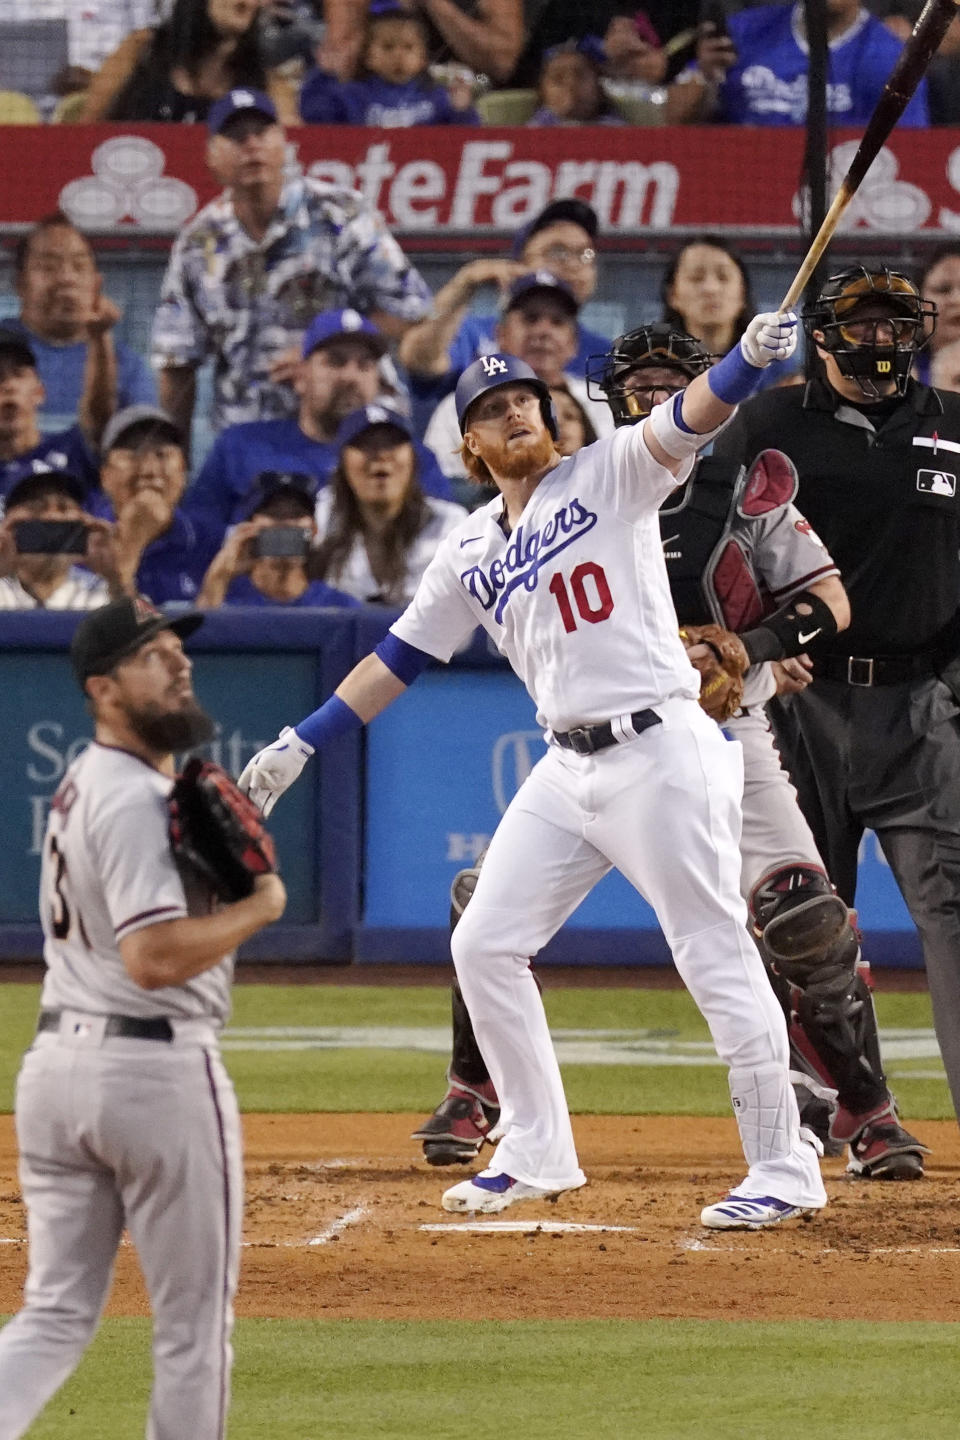 Los Angeles Dodgers' Justin Turner, second from left, hits a grand slam as Arizona Diamondbacks starting pitcher Caleb Smith, left, and catcher Bryan Holaday, second from right, watch along with home plate umpire Tony Randazzo during the second inning of a baseball game Saturday, July 10, 2021, in Los Angeles. (AP Photo/Mark J. Terrill)